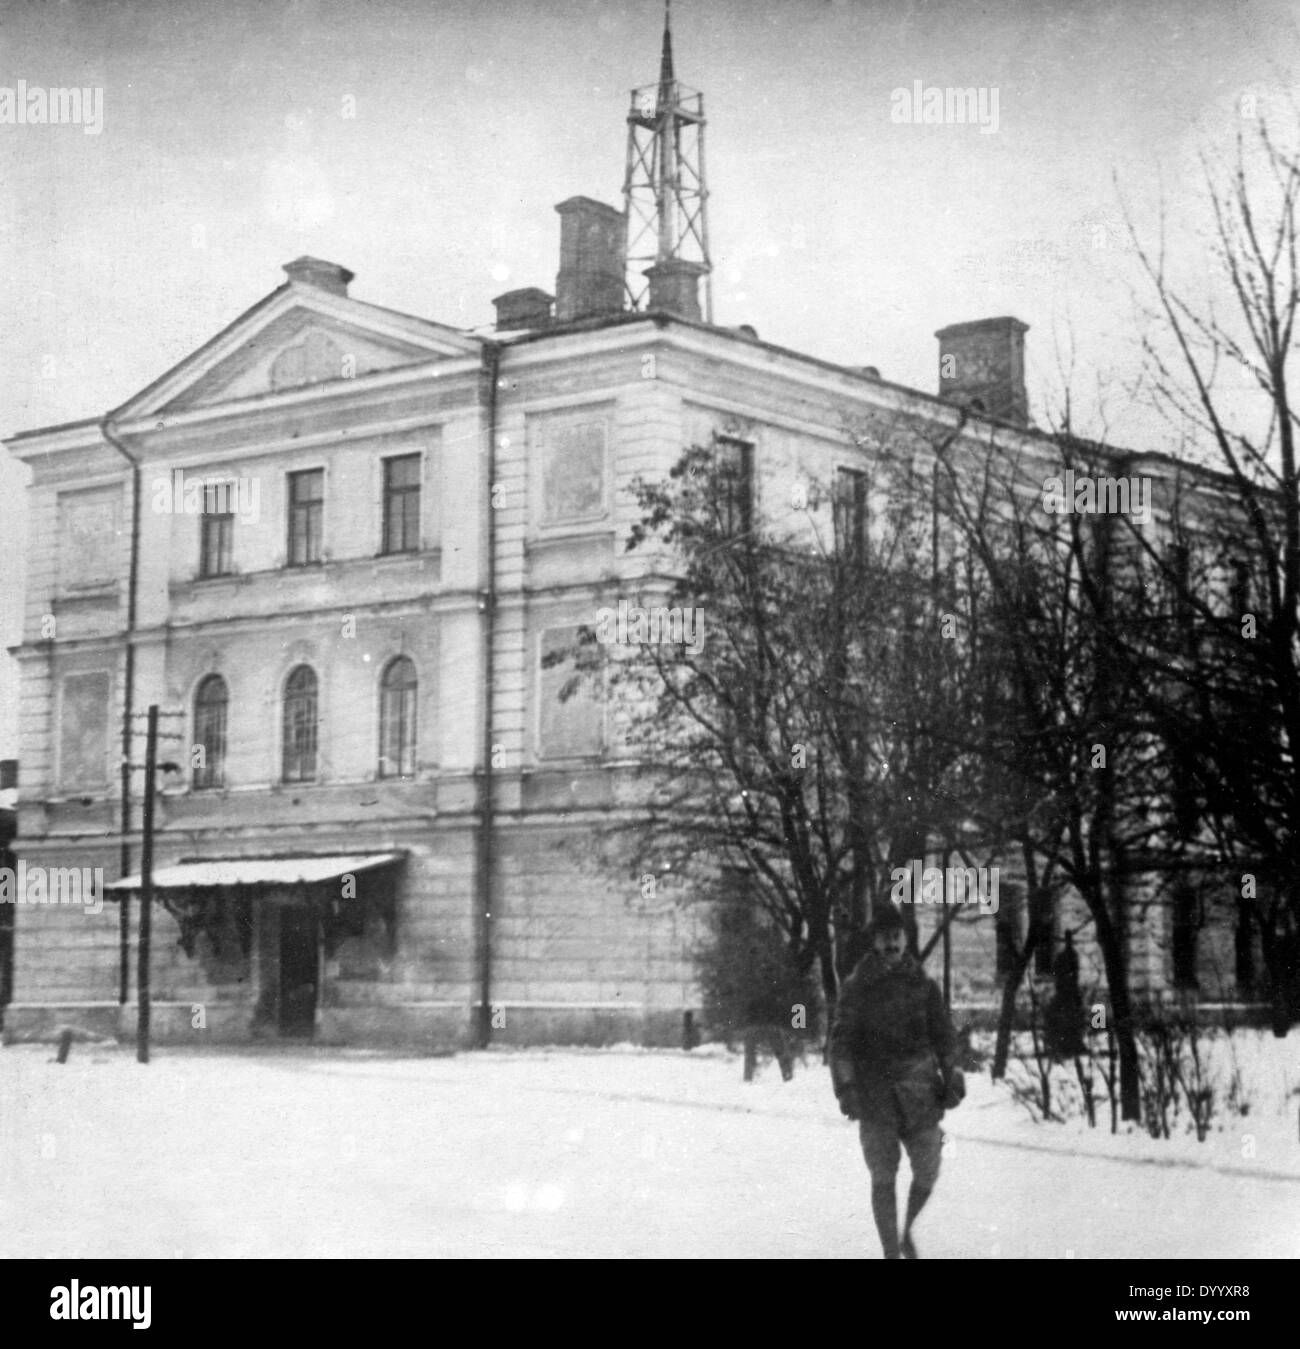 Negotiation building for the Treaty of Brest-Litovsk, 1918 - Stock Image